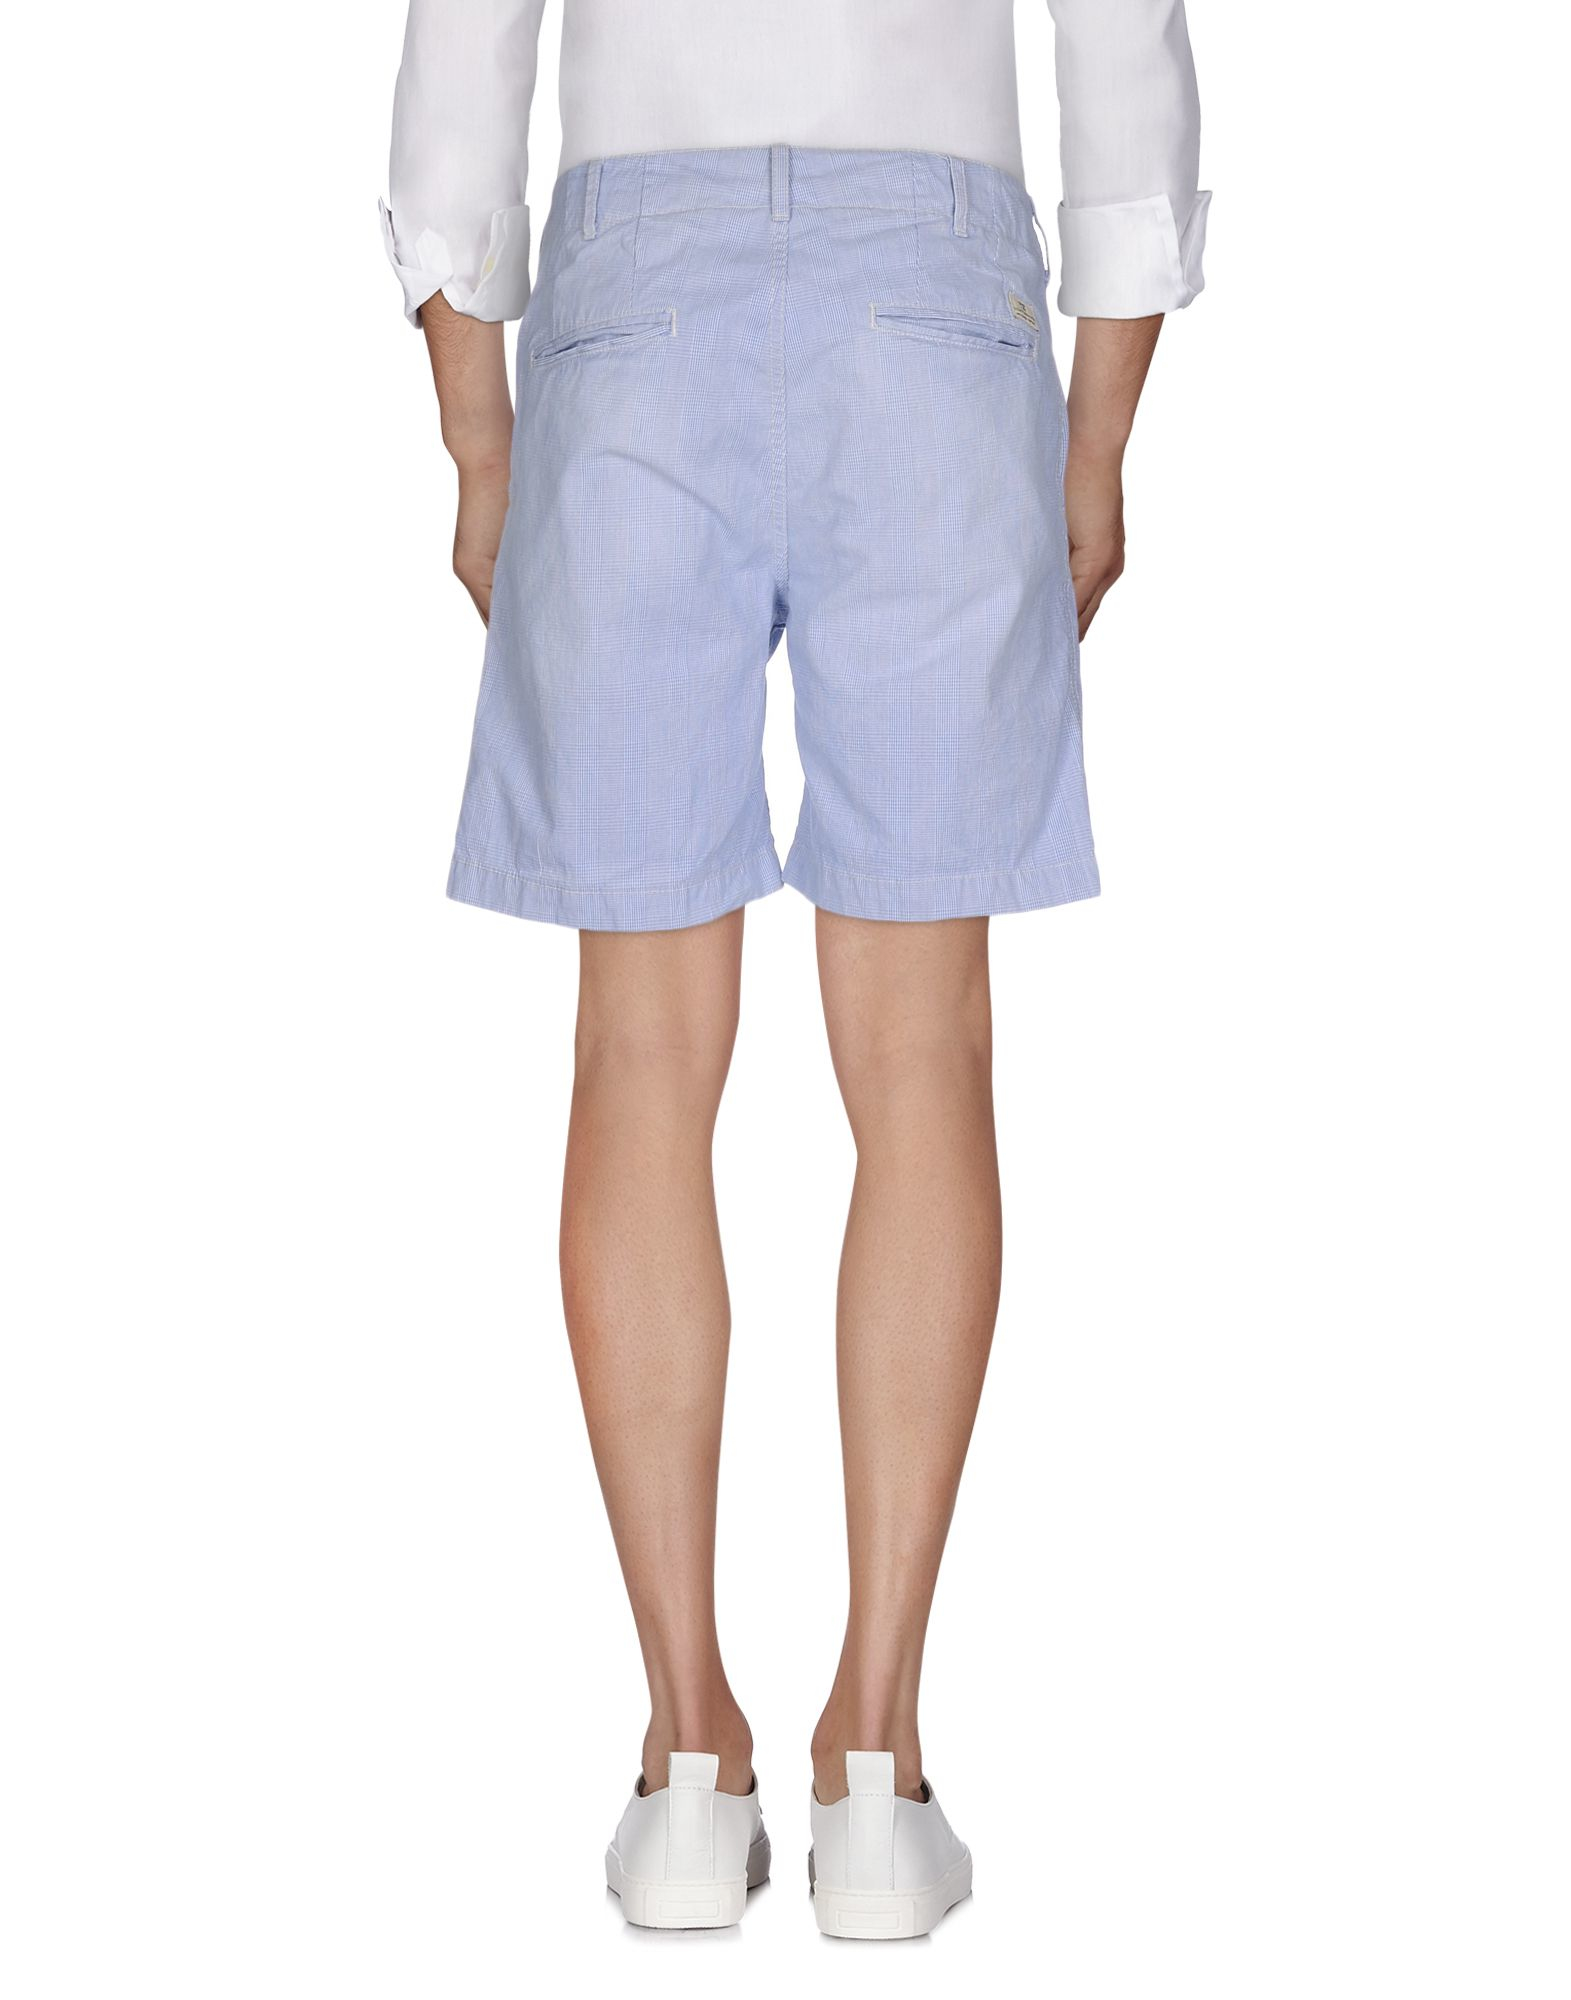 Scotch & soda Bermuda Shorts in Blue for Men